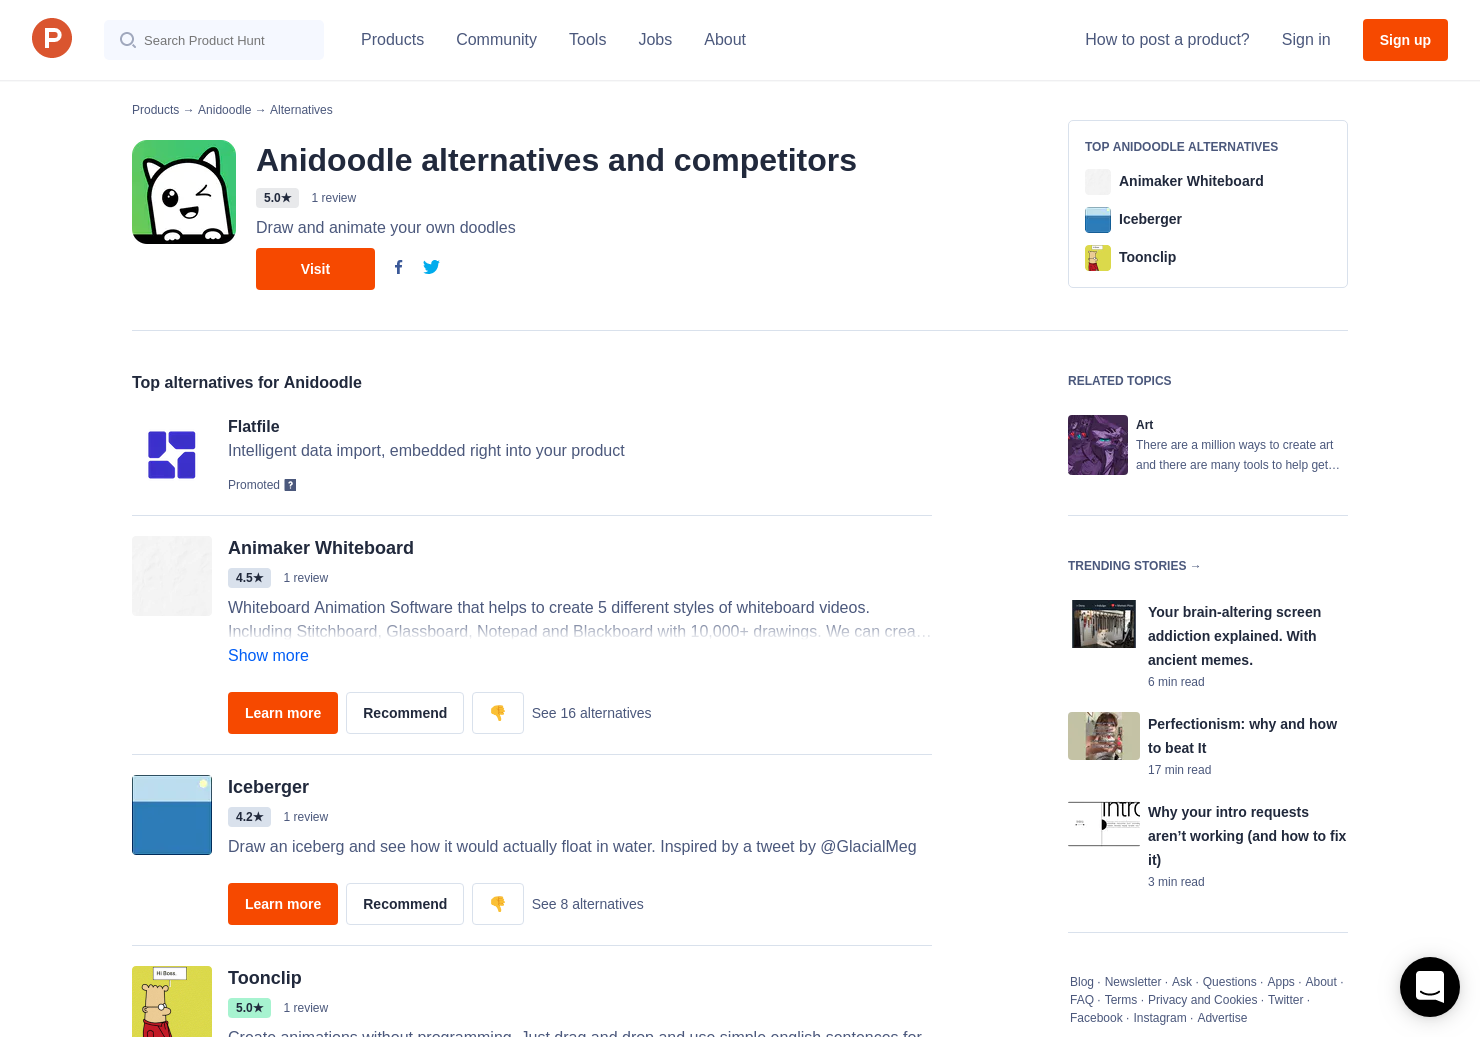 6 Alternatives to Anidoodle | Product Hunt